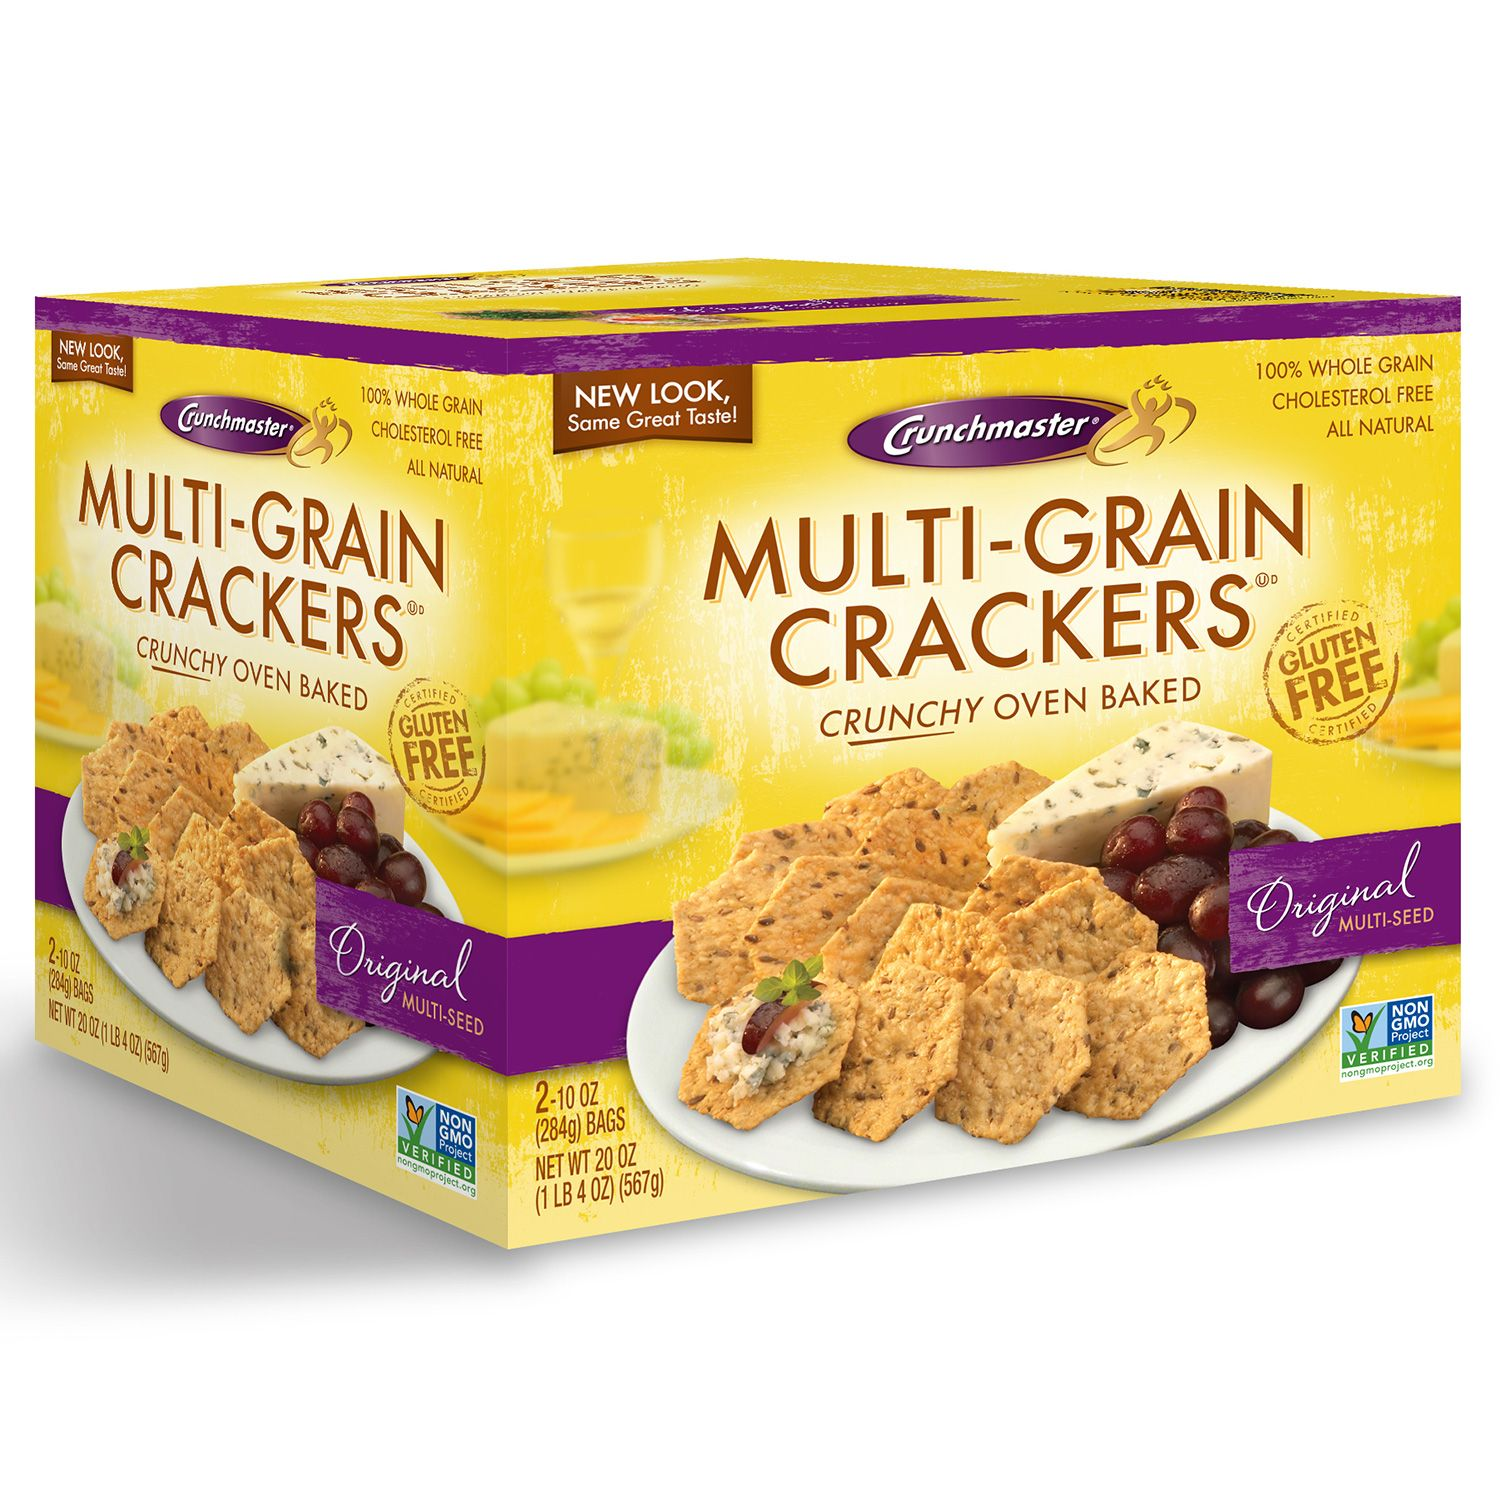 Details about Crunchmaster Multi-Grain Crackers Gluten Free 20 oz.